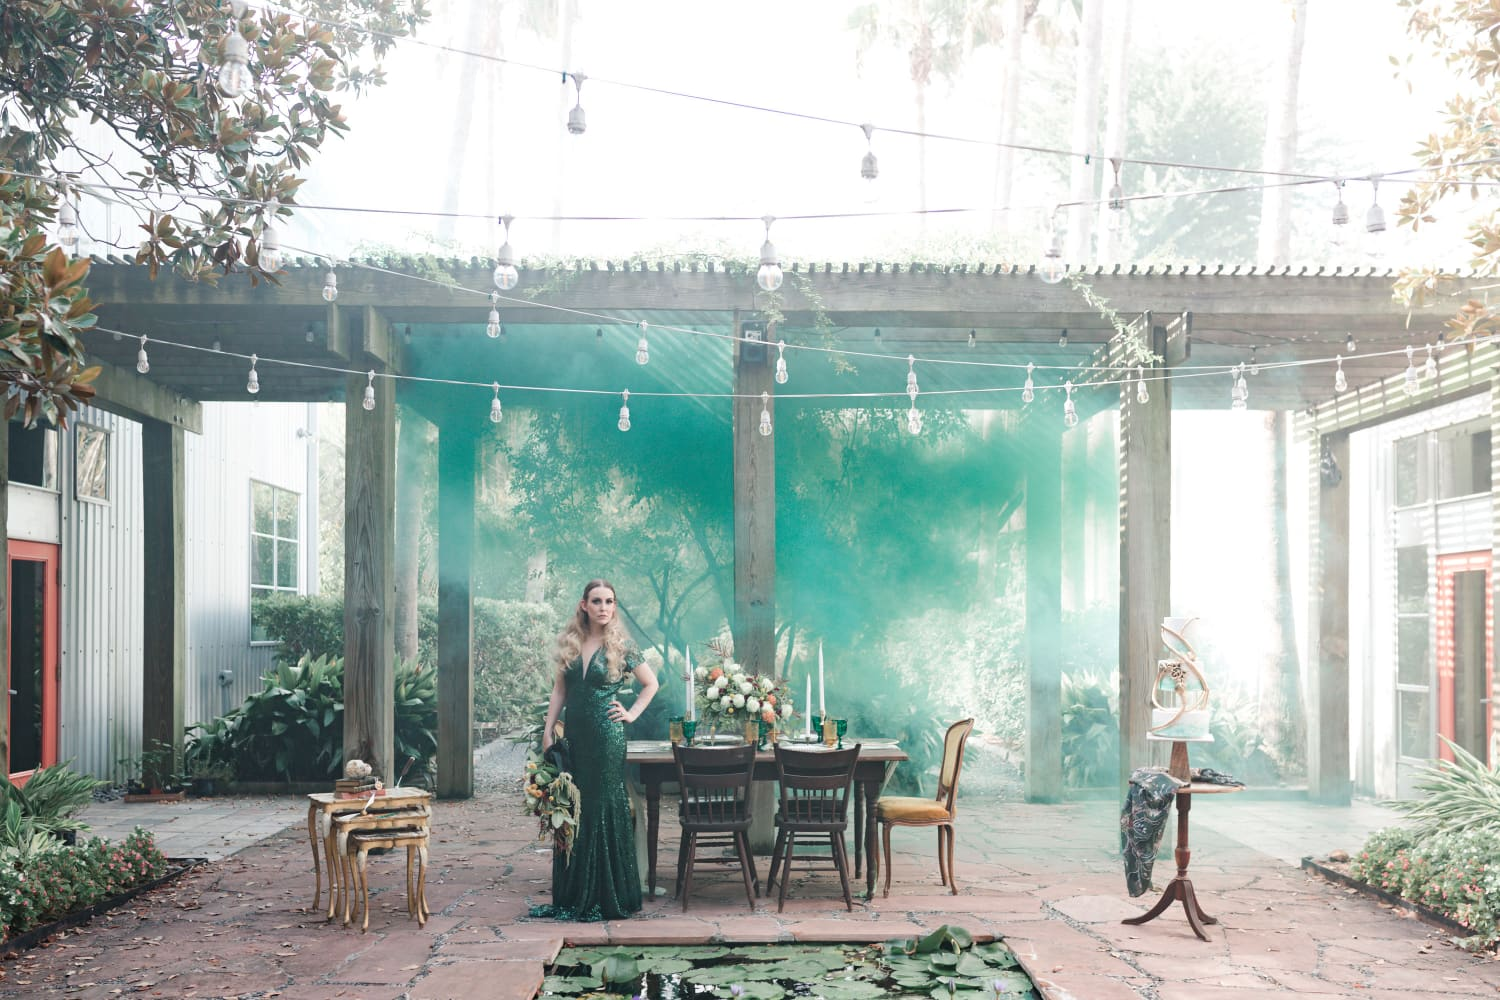 Calling All Slytherins: Here's the Wedding Photo Shoot of Your Dreams